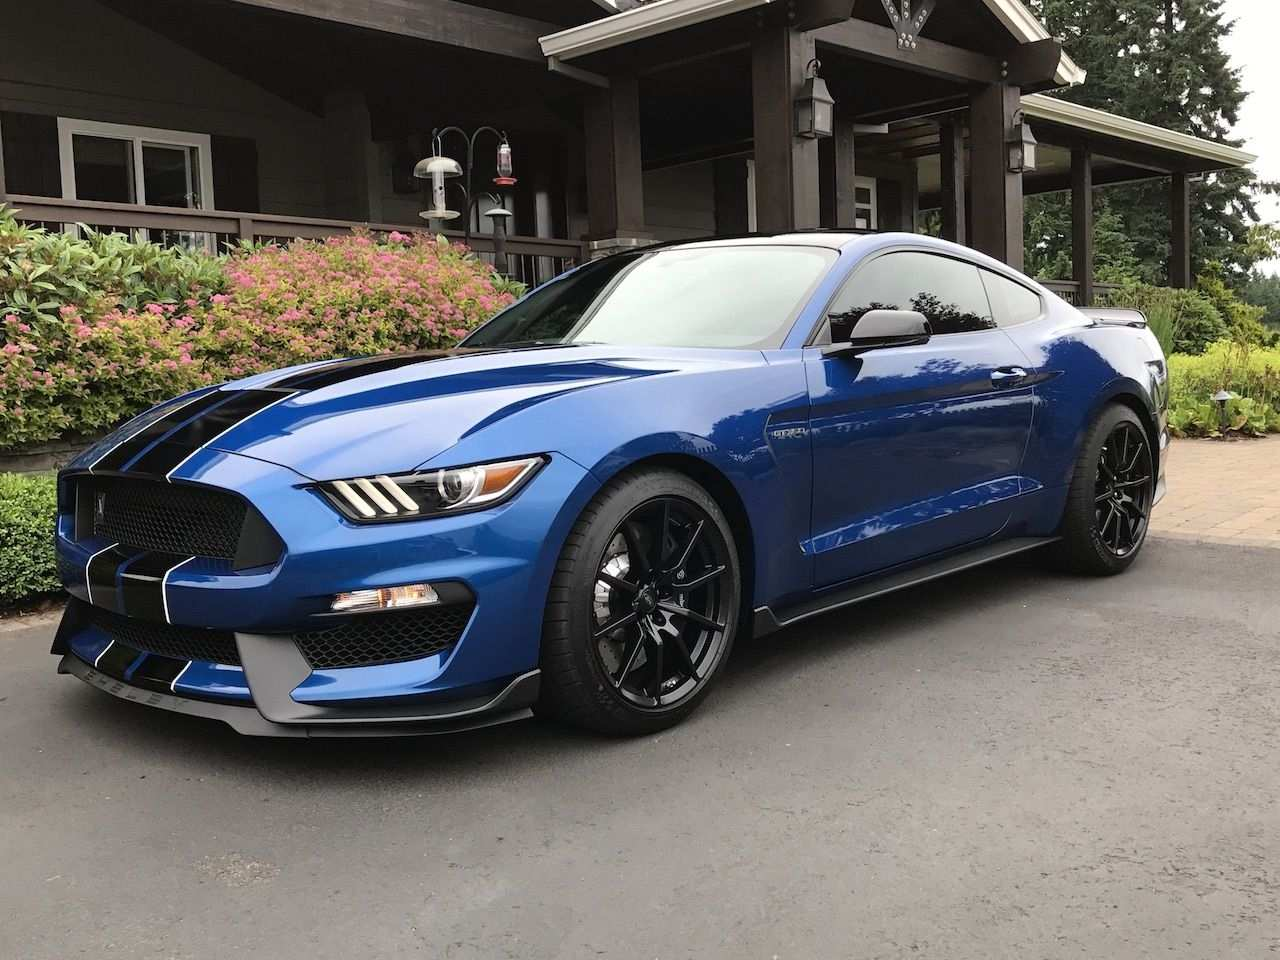 64 The Best 2019 Mustang Mach Price